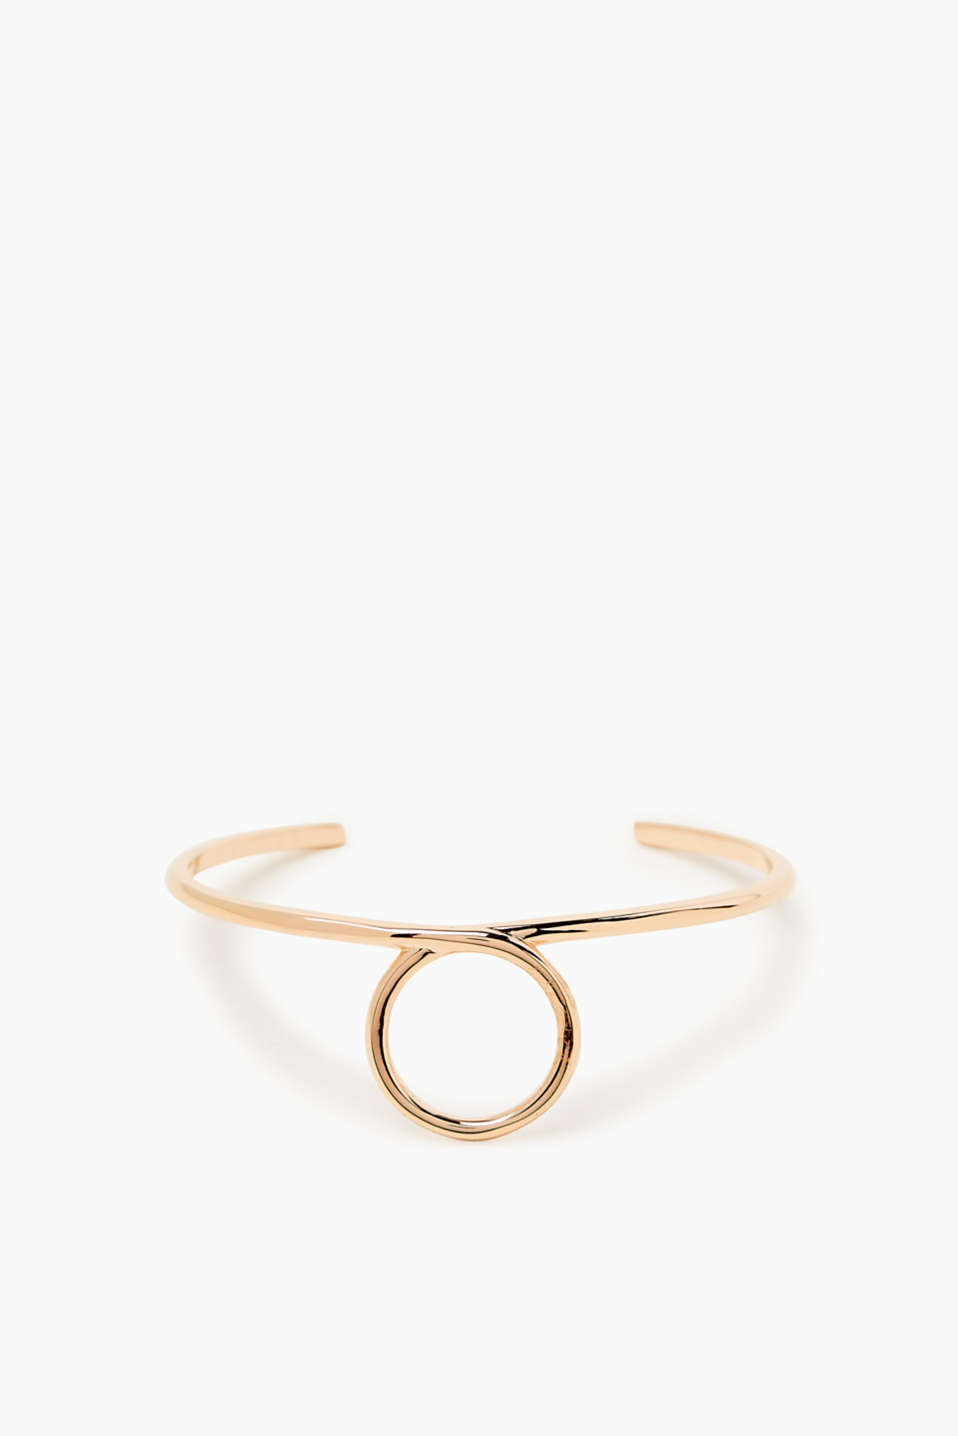 Esprit - Open bangle in a rose gold tone